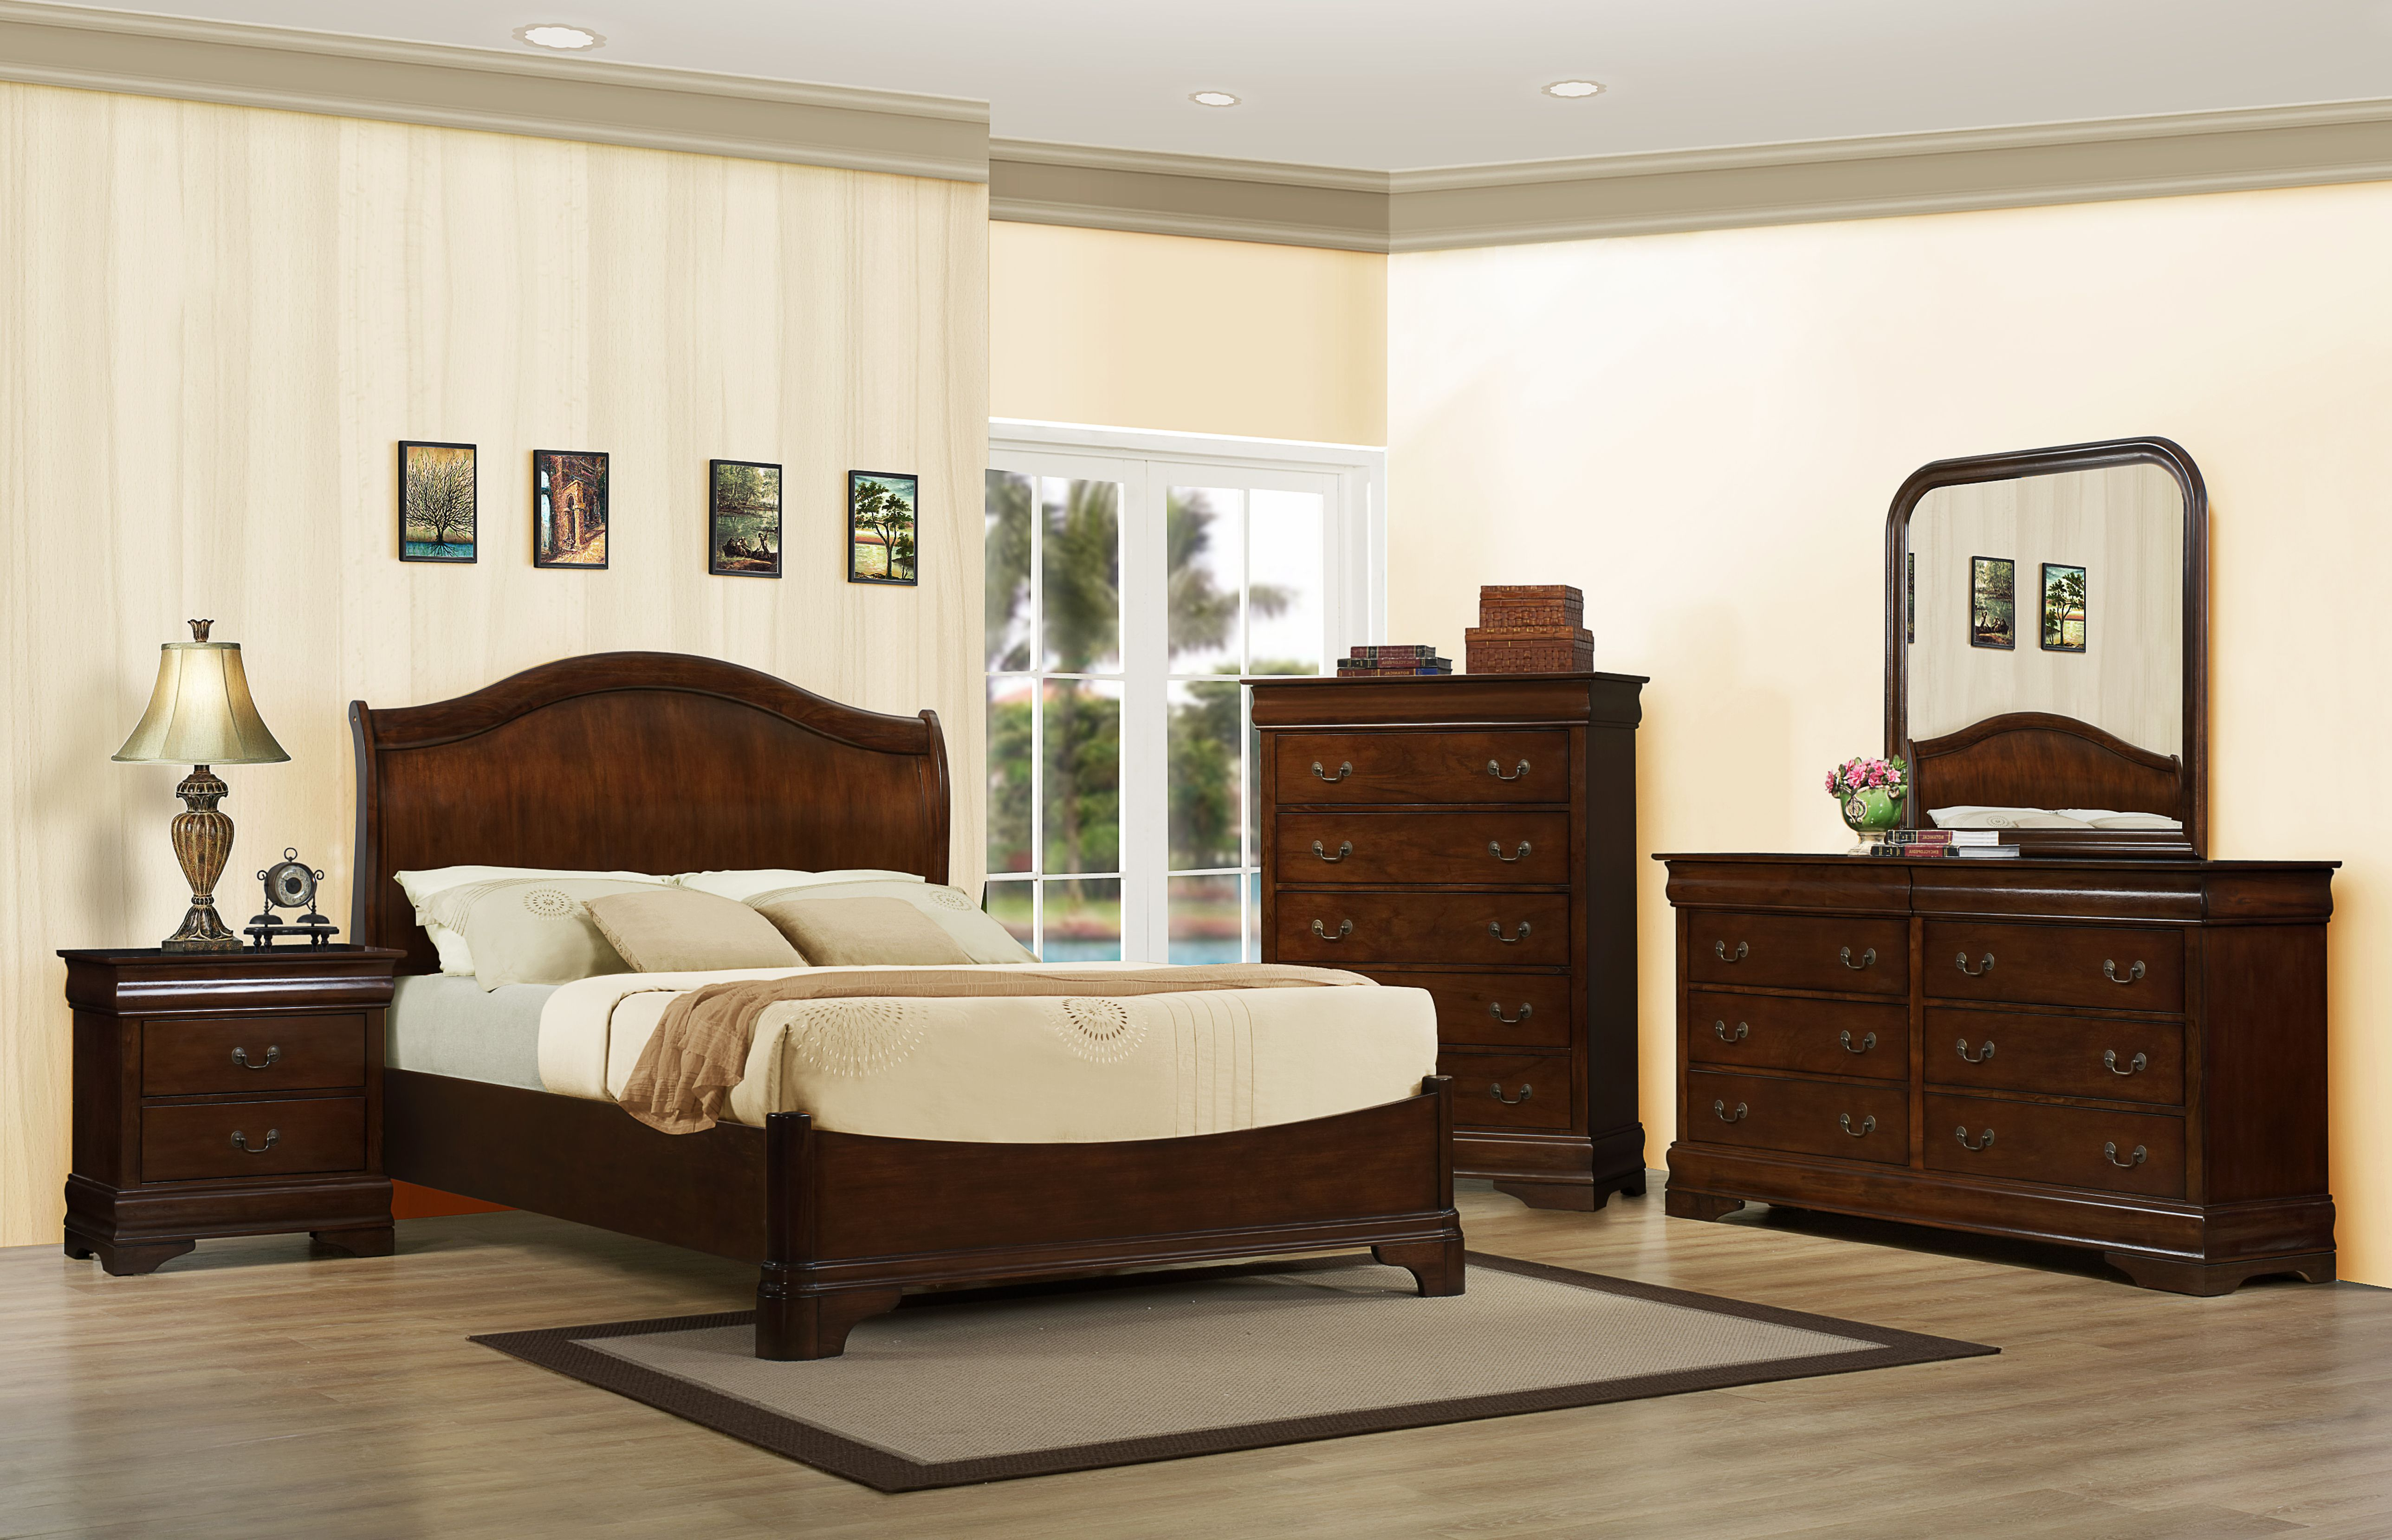 Meuble Aubaine Set De Chambre Pin By Group Vaudreuil On Hot Deals In Vaudreuil Area King